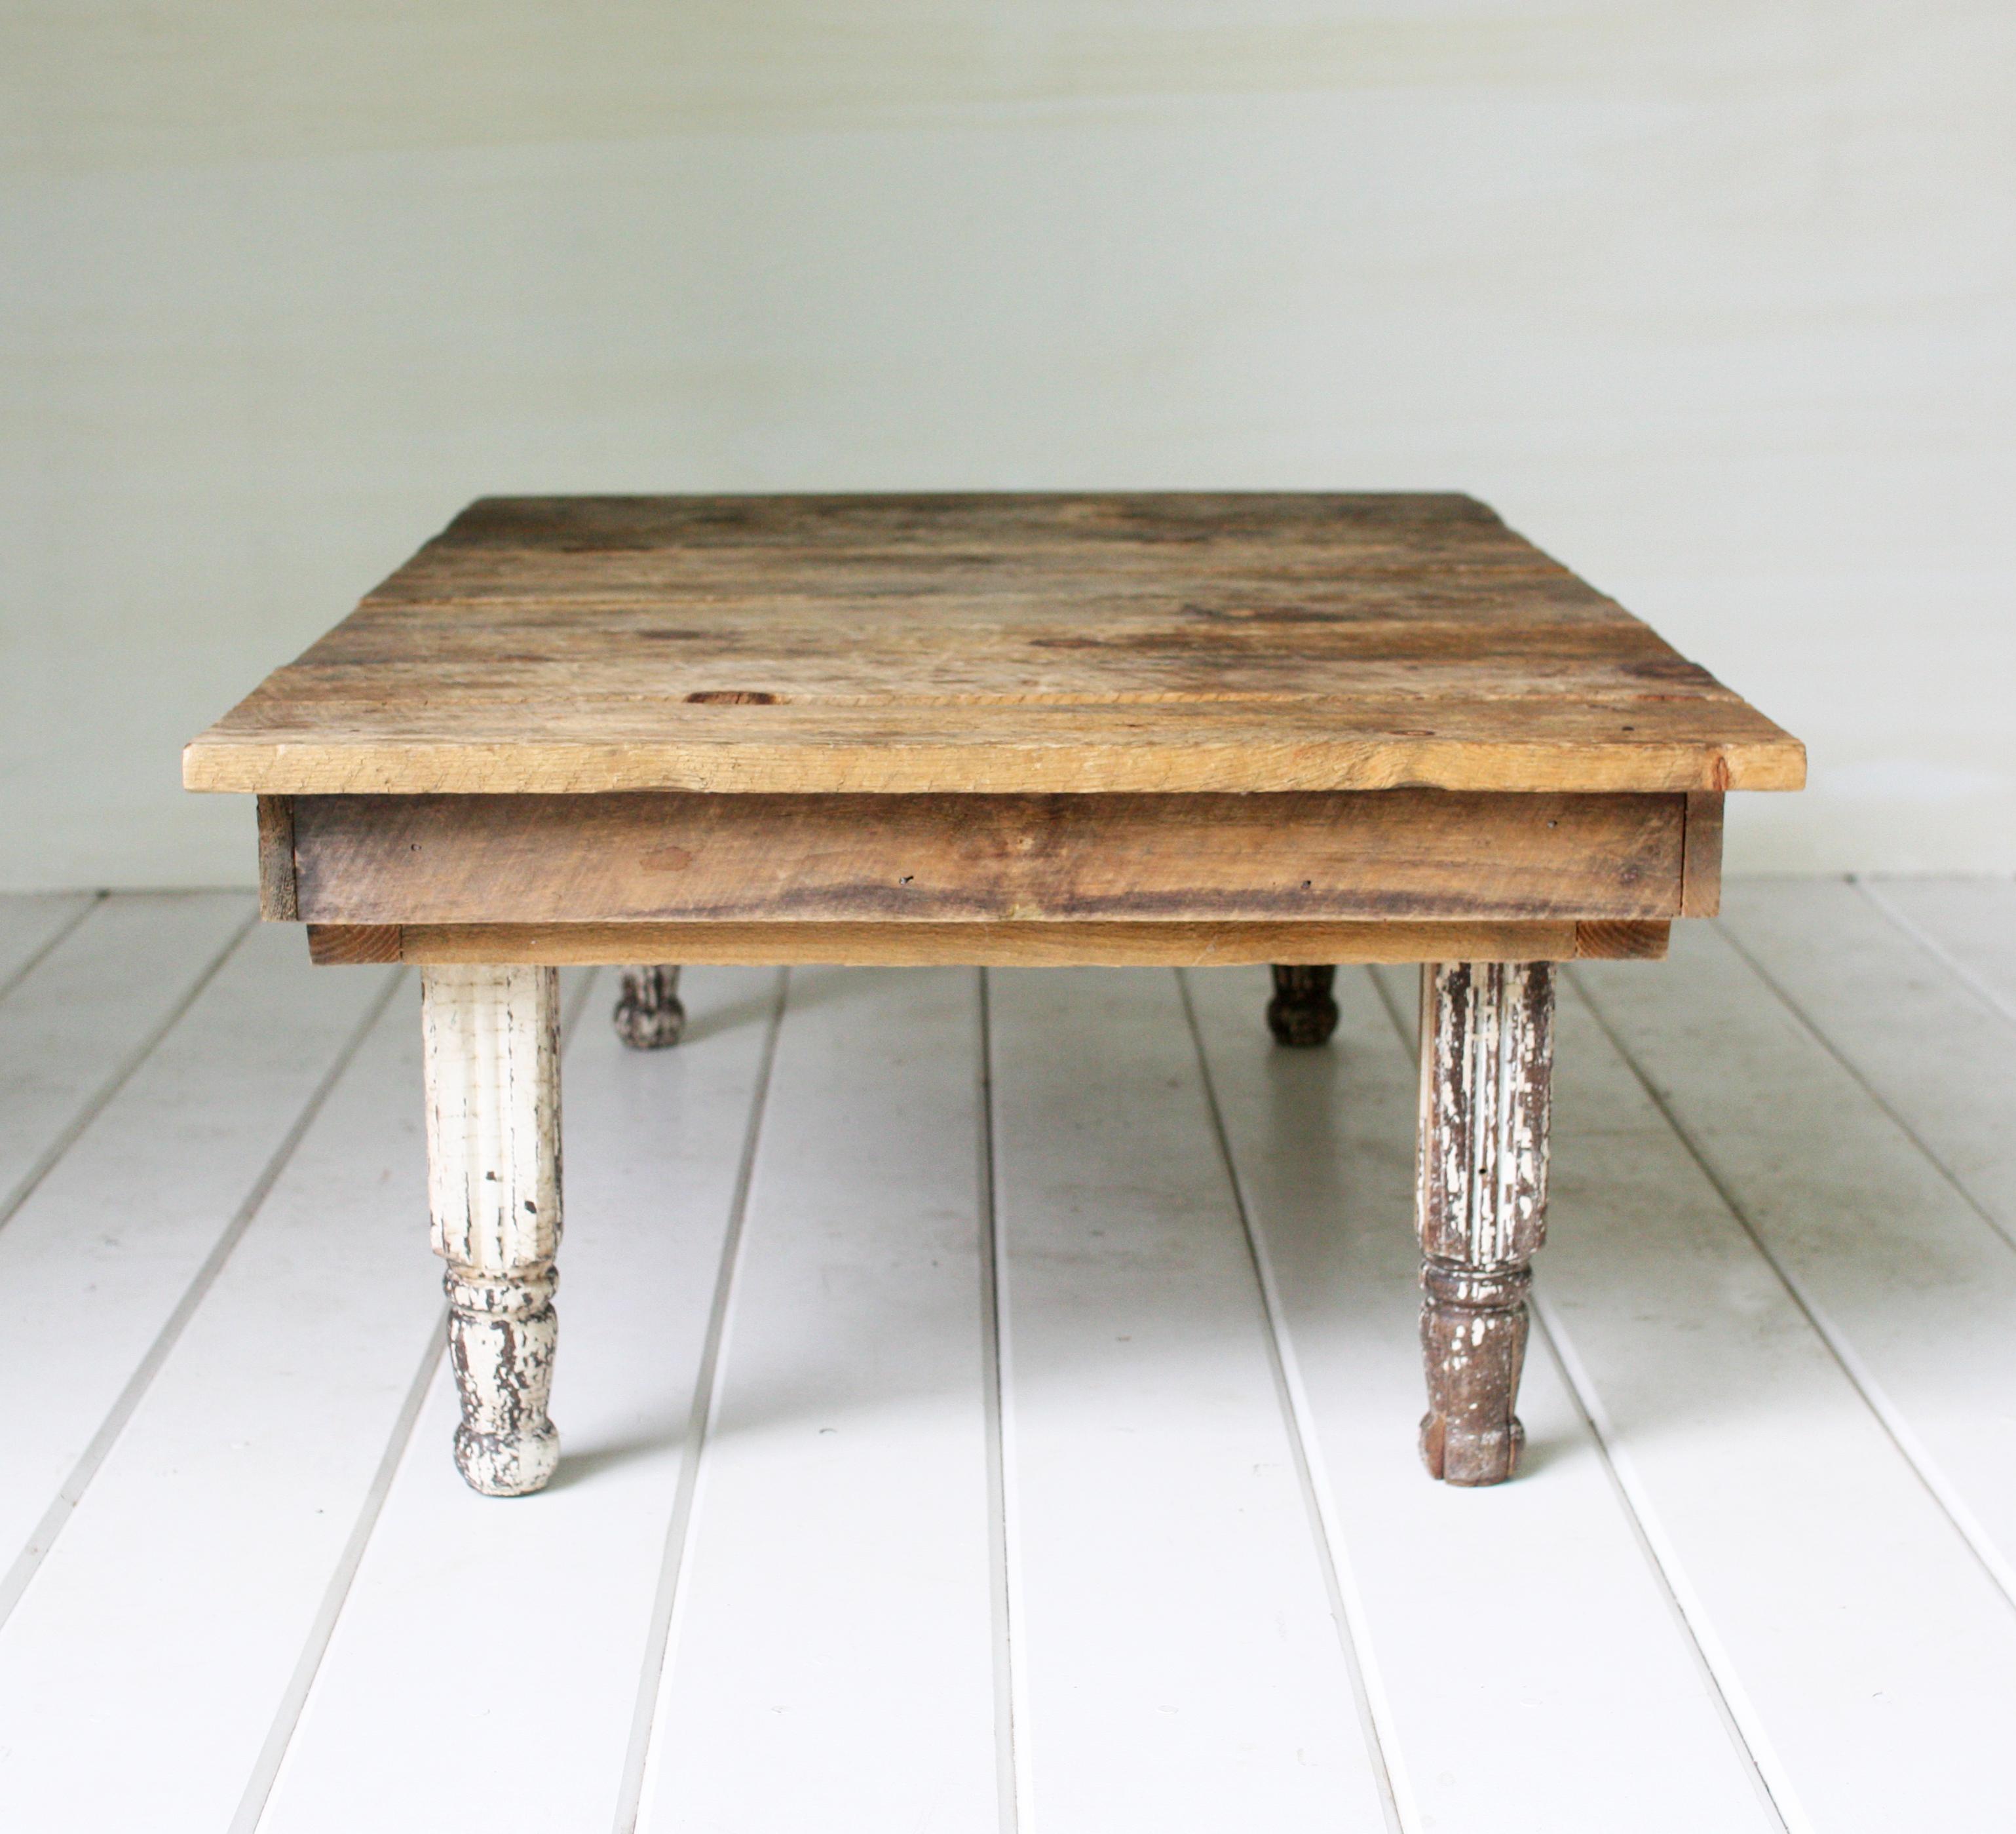 Rustic coffee table vintage rentals in connecticut for Table rentals